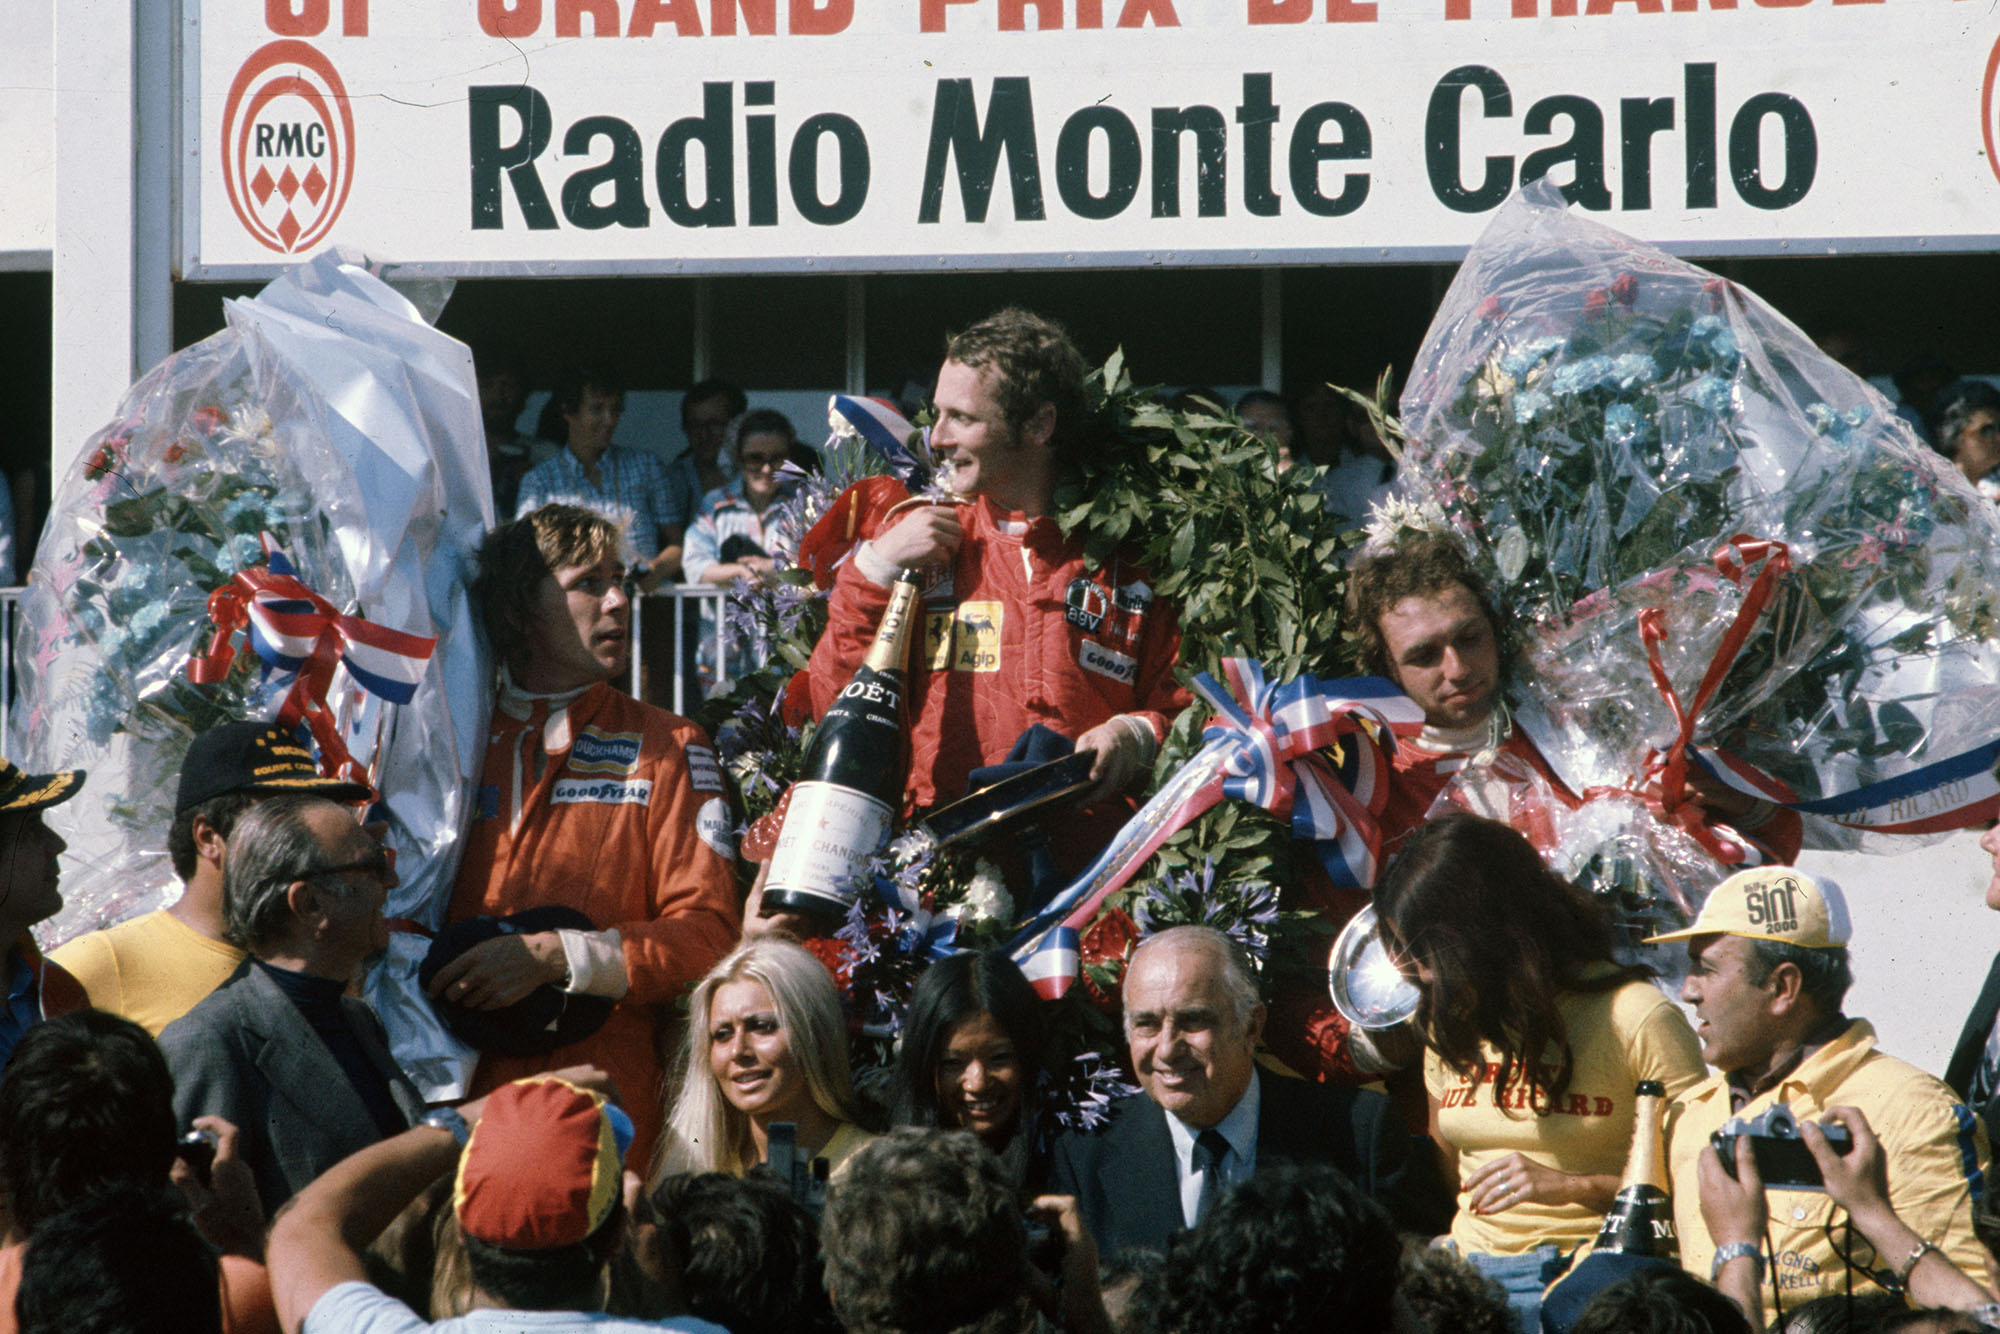 Niki Lauda on top the podium after winning the 1975 French Grand Prix, Paul Ricard.